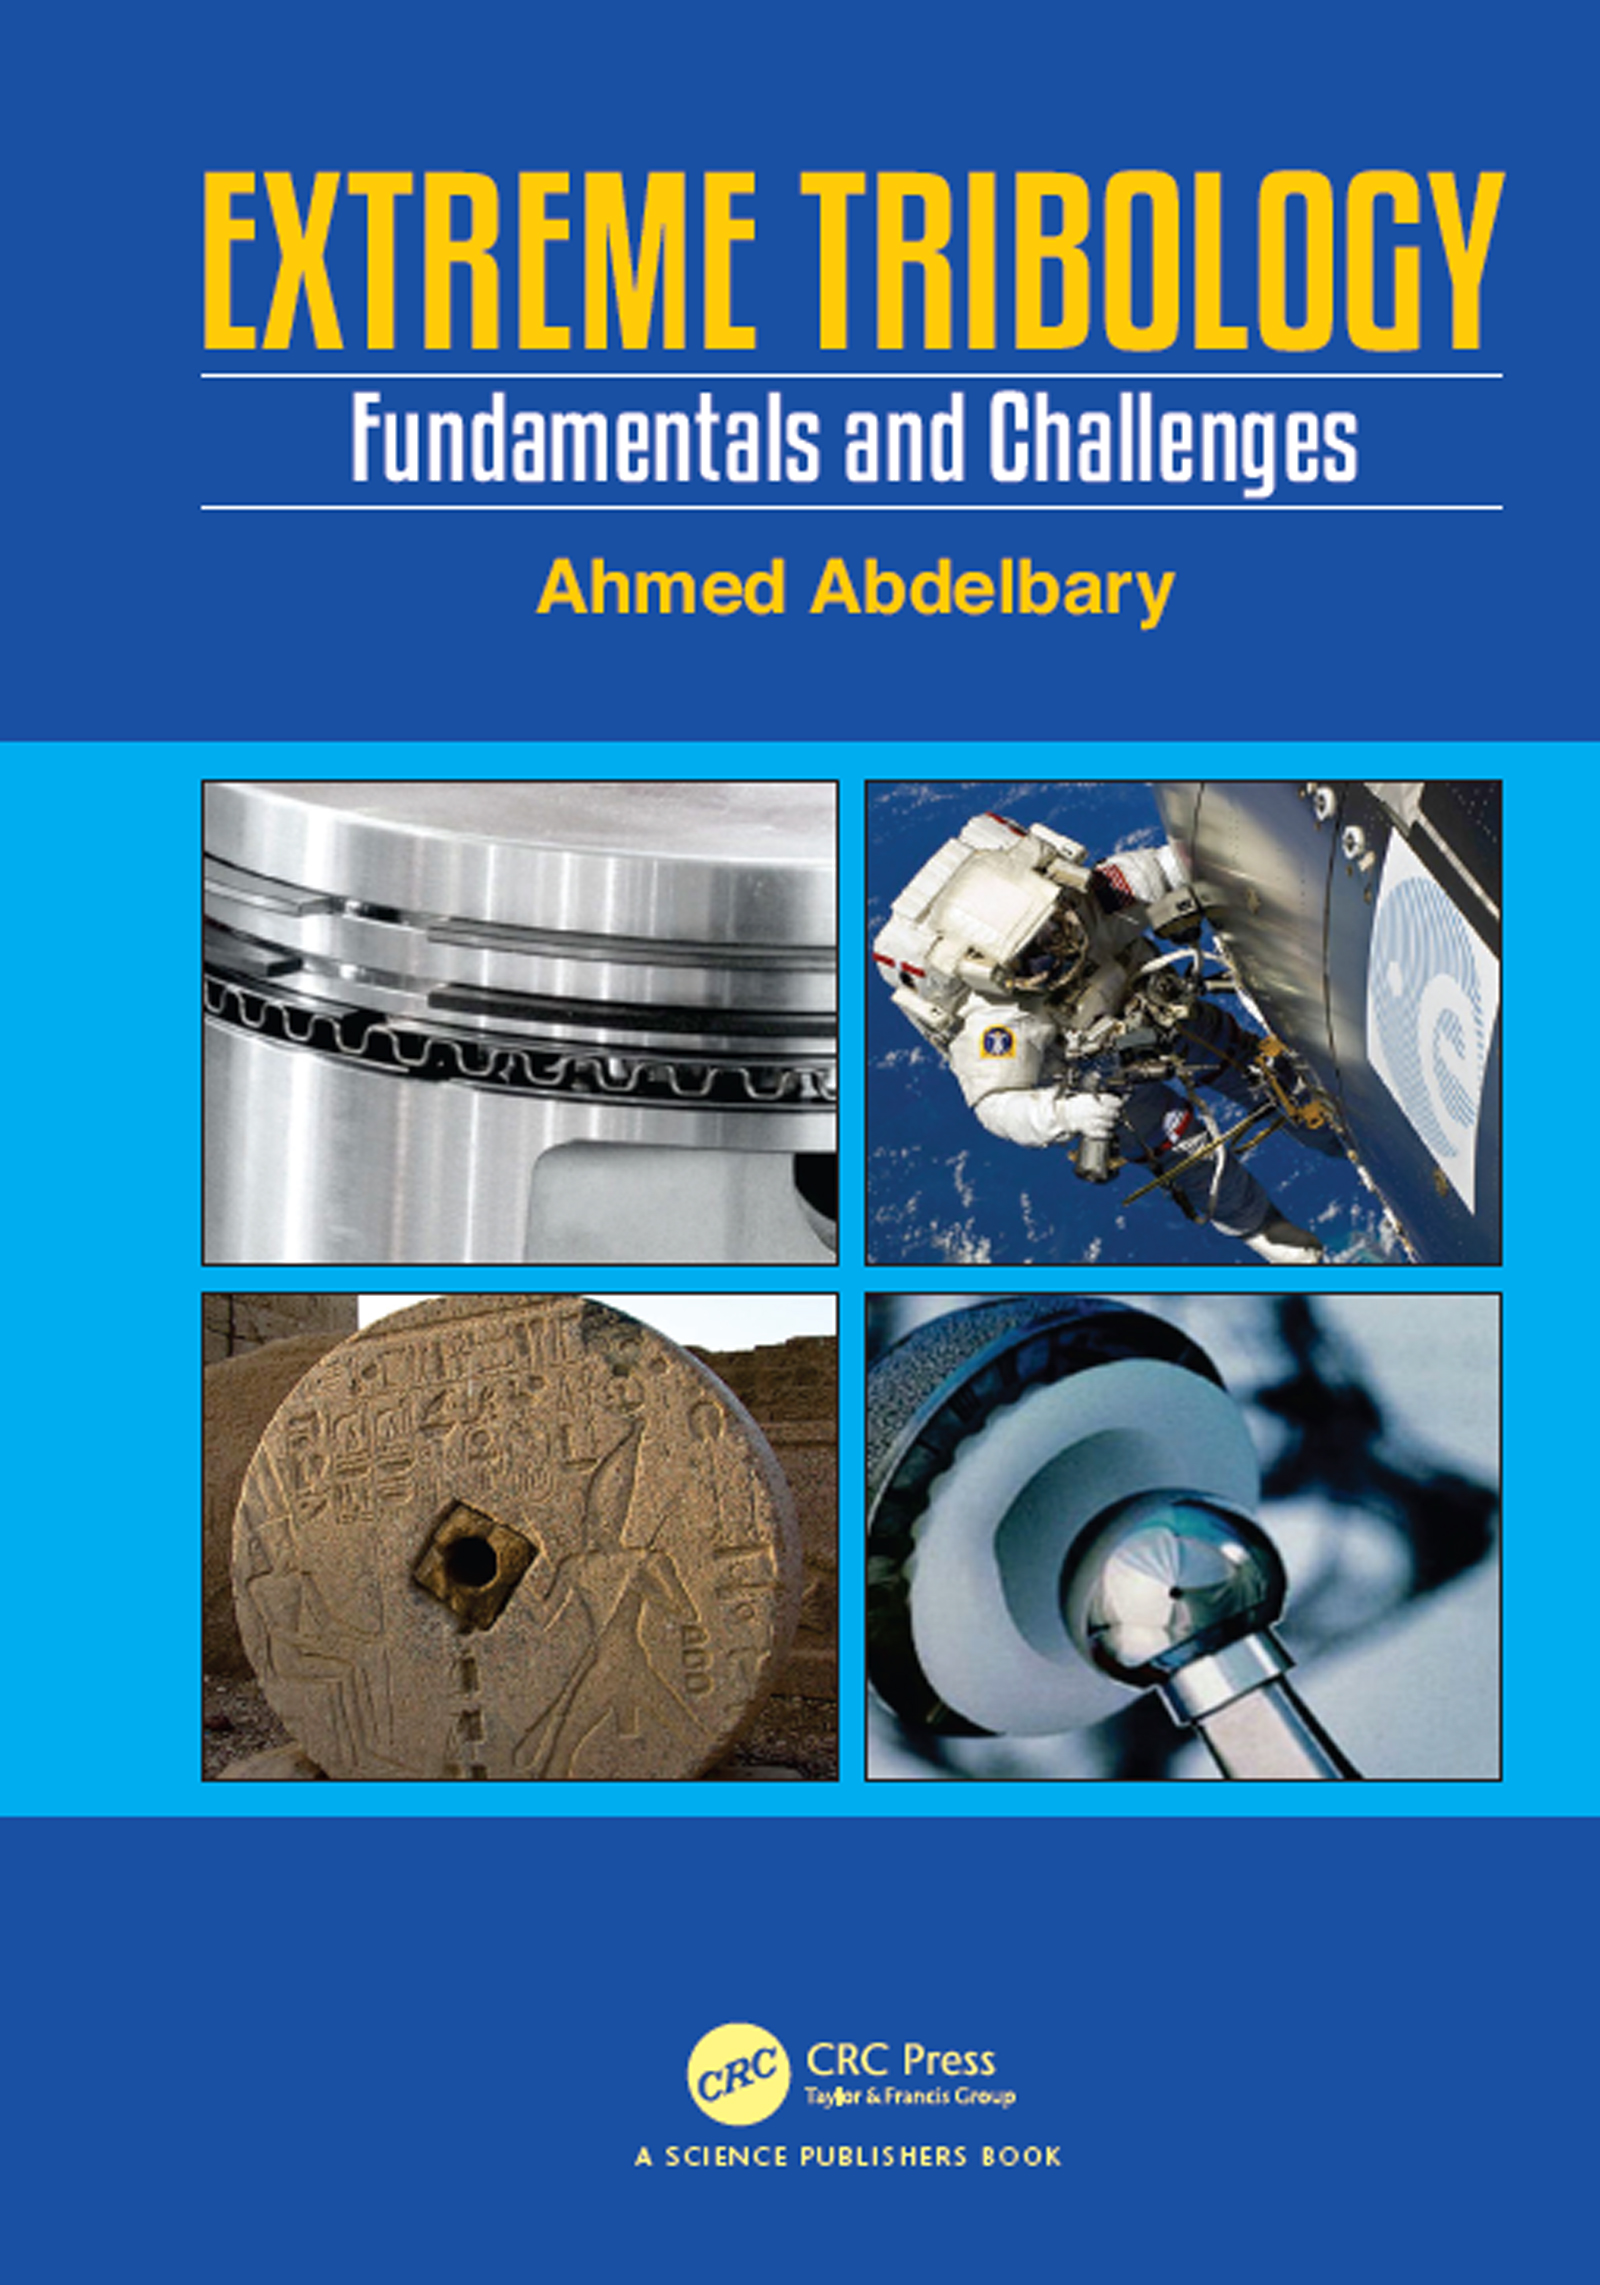 Extreme Tribology: Fundamentals and Challenges book cover